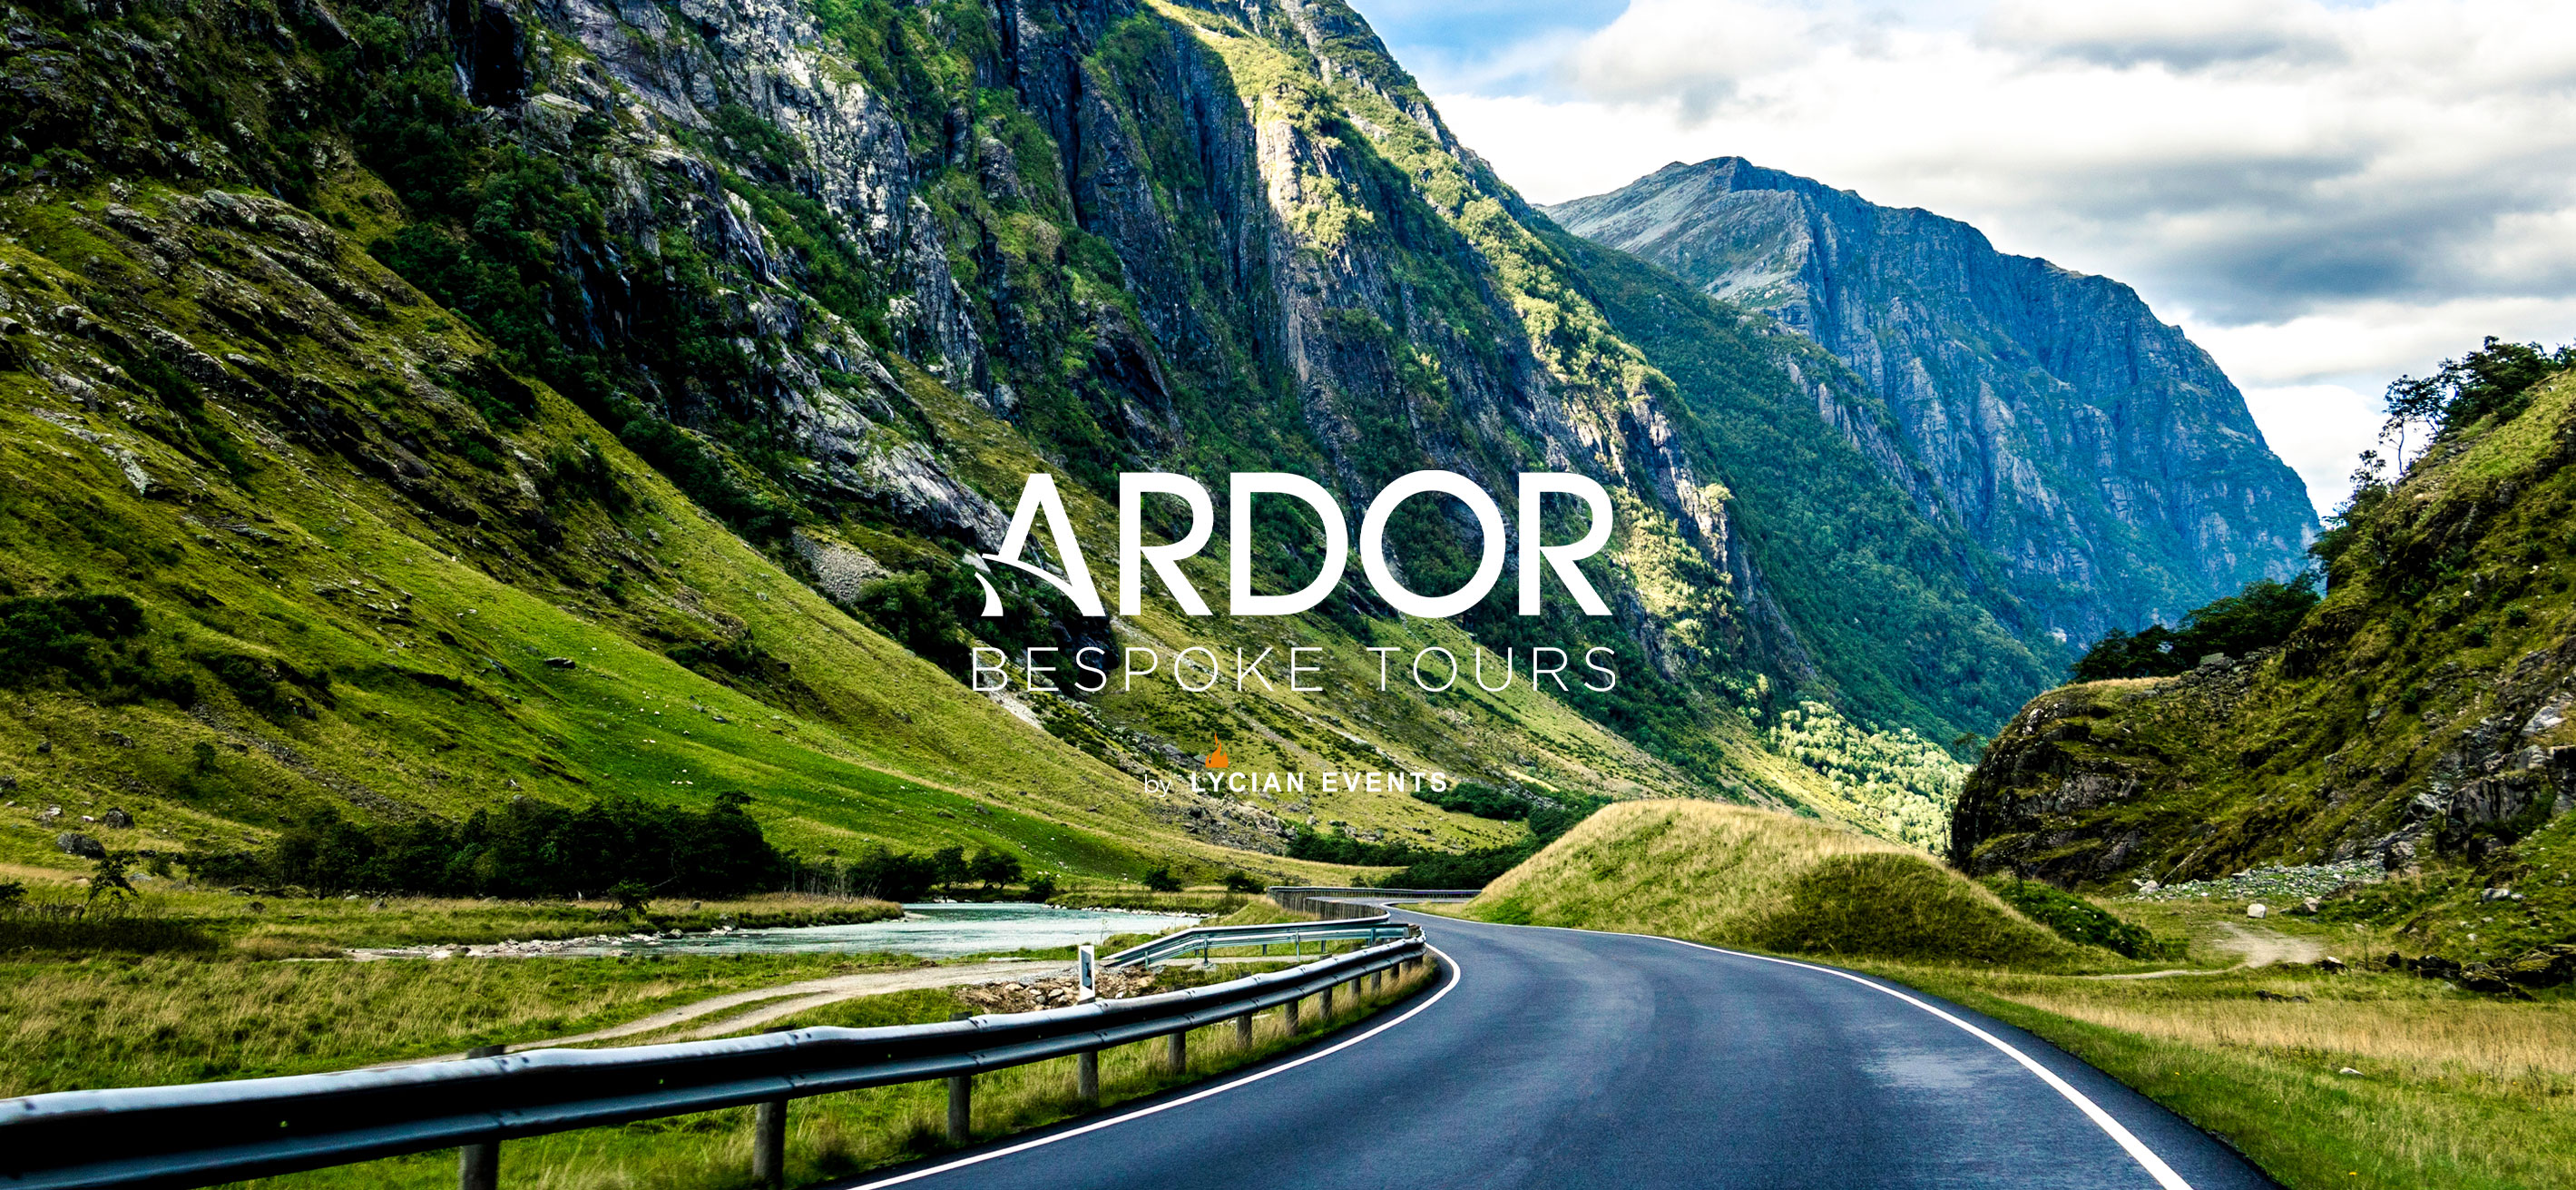 ardor-background